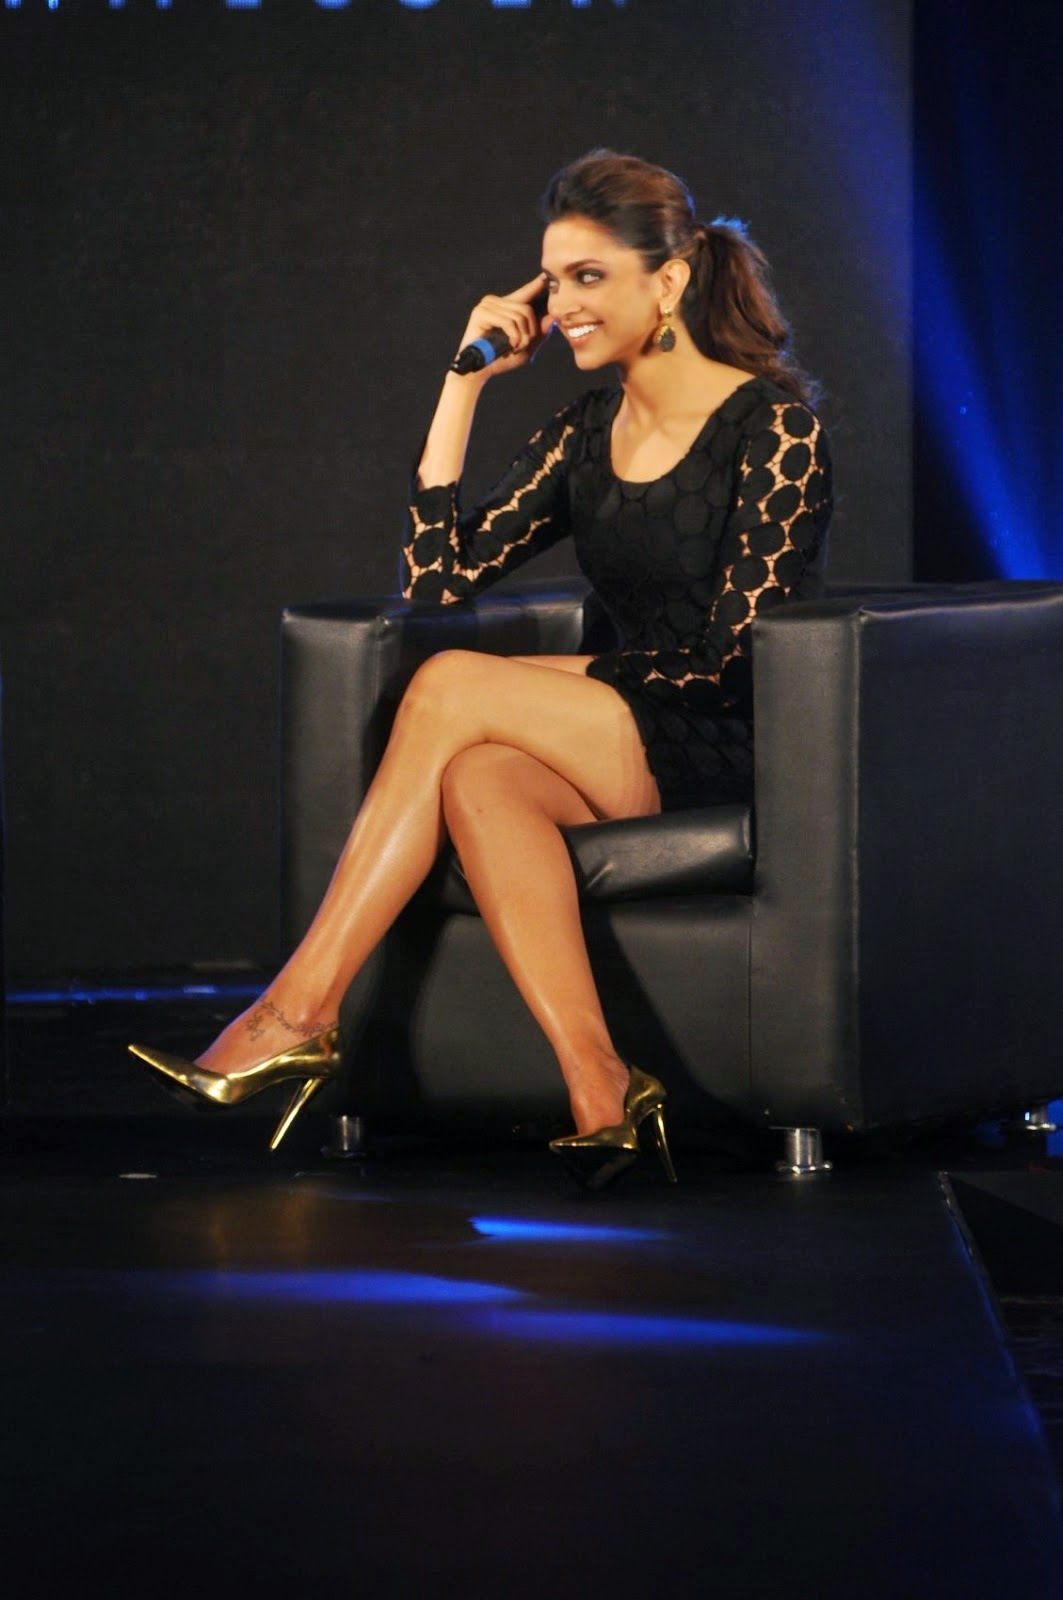 Deepika Padukone Showing Her Hot and Sexy Legs